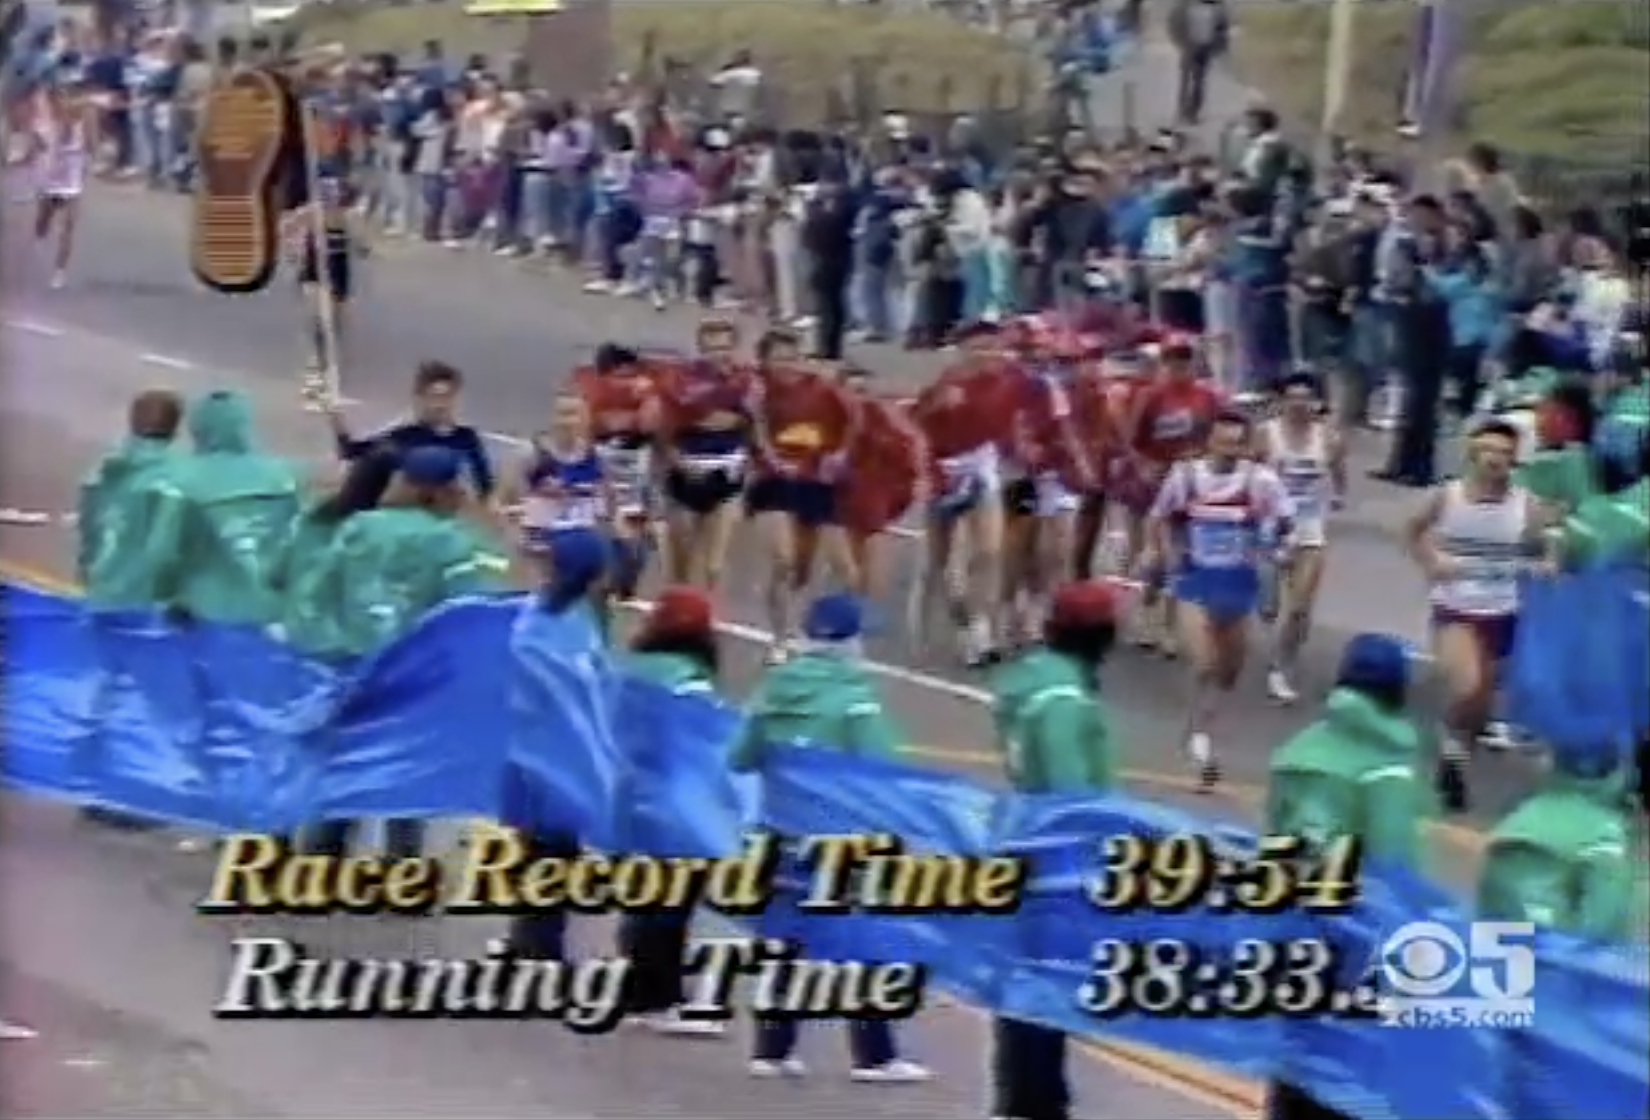 Click to watch 1986 Bay to Breakers Highlights Show. Aggie, Ed Eyestone wins in record time; Men's centipede gets out kicked by Grete Waitz at the finish. 110,000 total participants hit the streets of San Francisco.